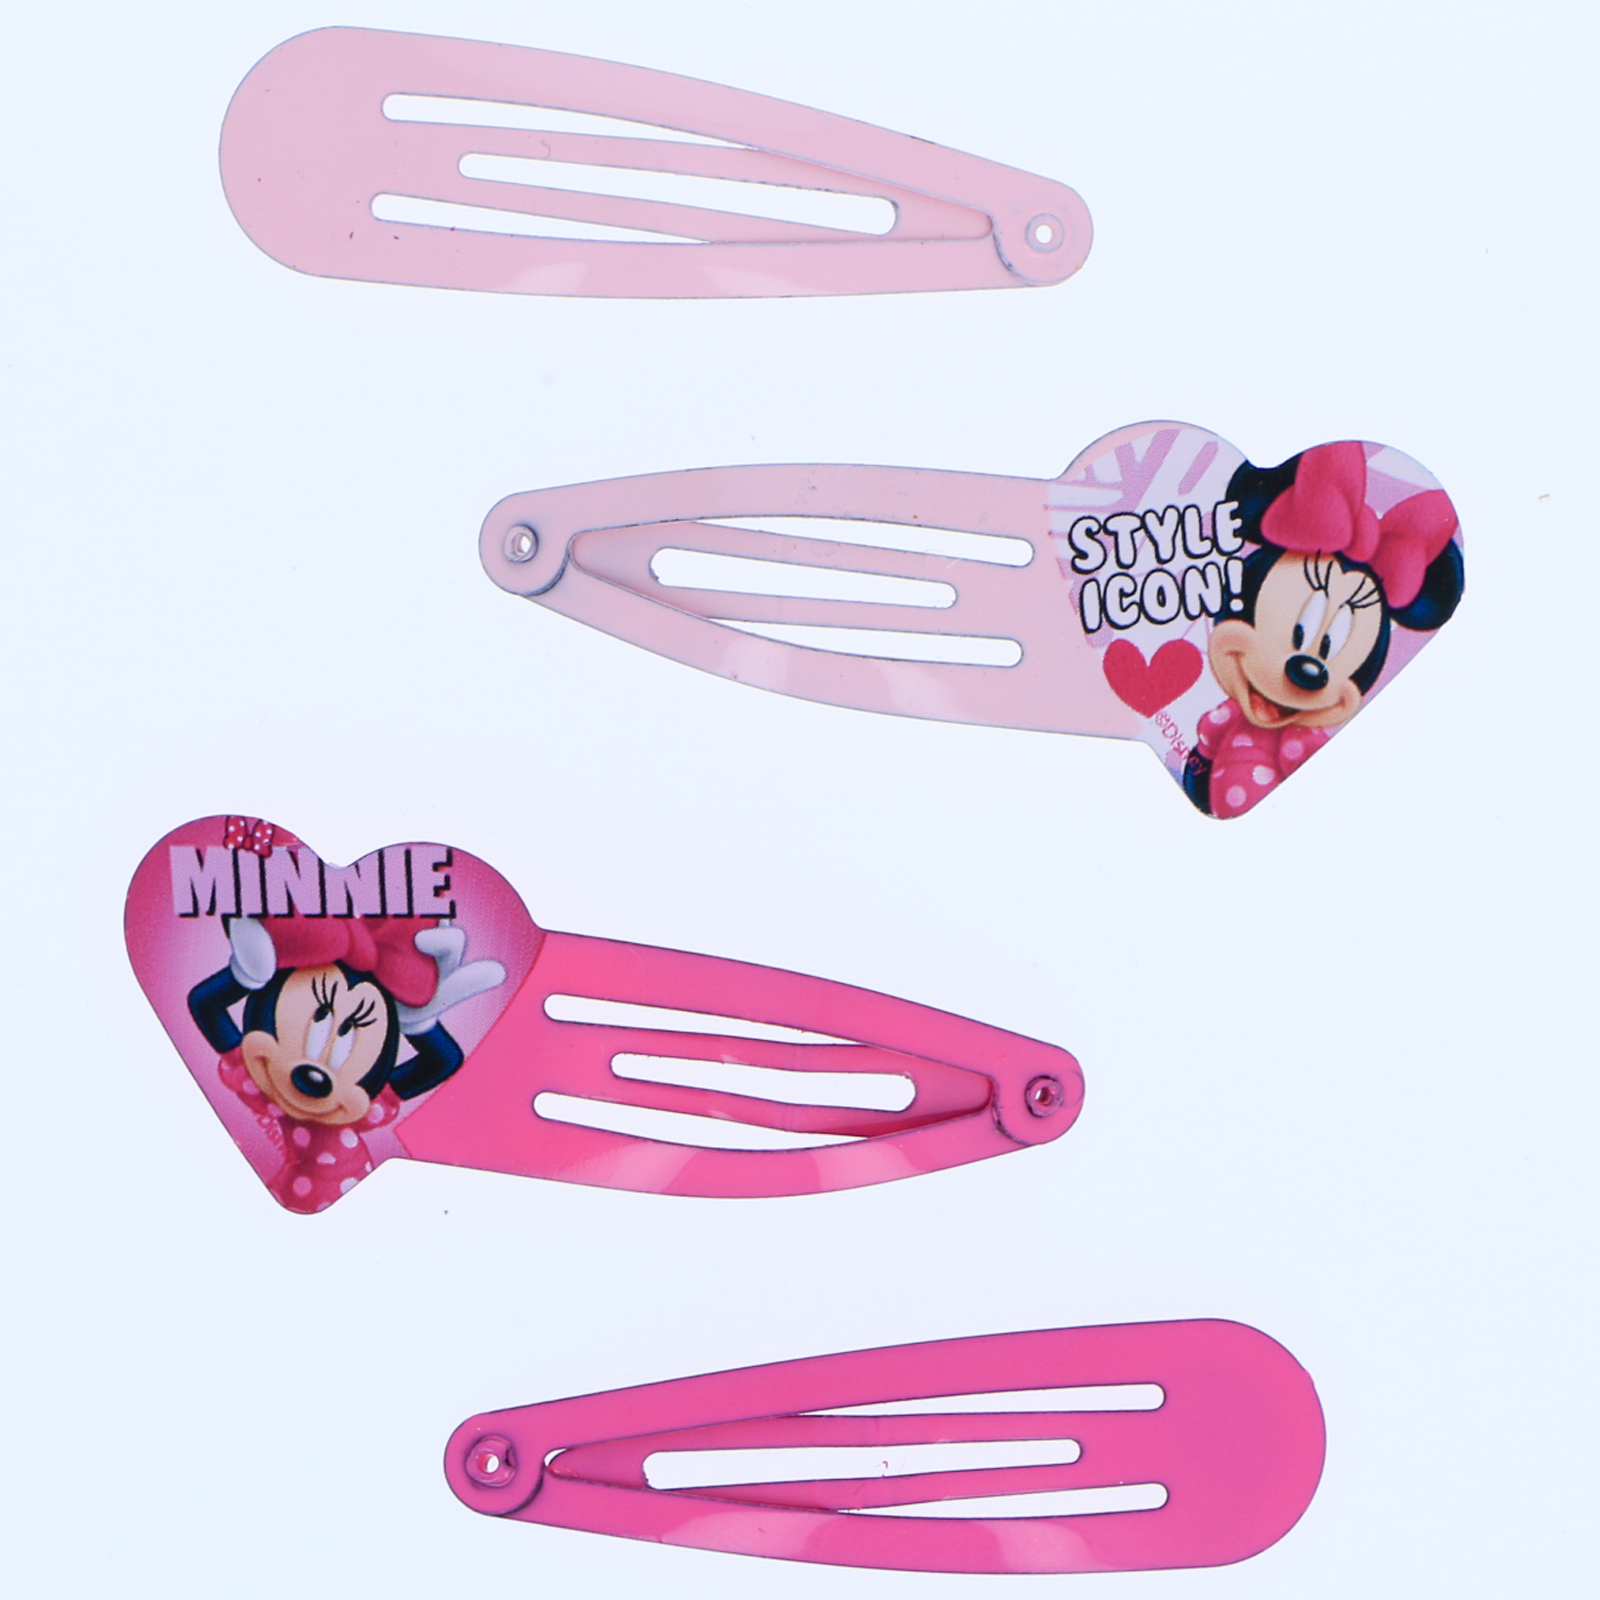 Disney Junior Minnie Mouse Girls Hair Brush and Clips Dress Up Accessory Set